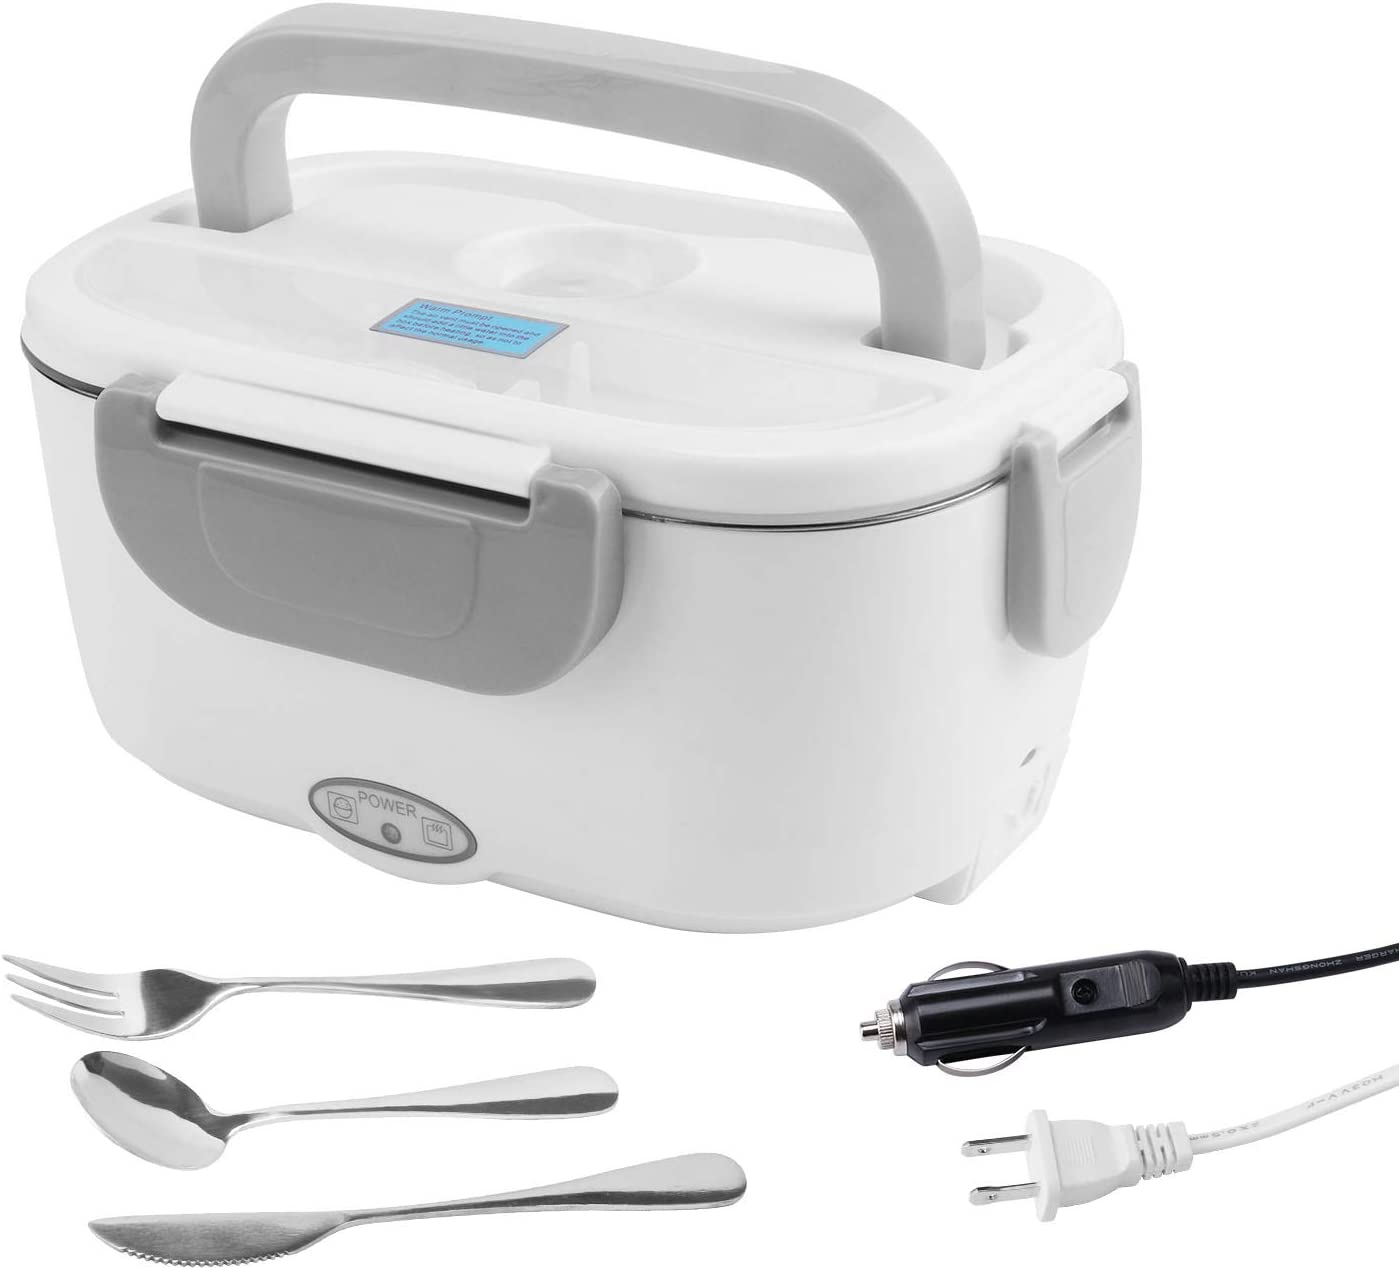 Electric Lunch Box 3in1 Use Heating Food for Car/Truck and Work 110V & 12V-24V Portable , with Removable 1.5L 304 Stainless Steel Food Container and 2 Compartments Variable Space,Free tableware (Gray)